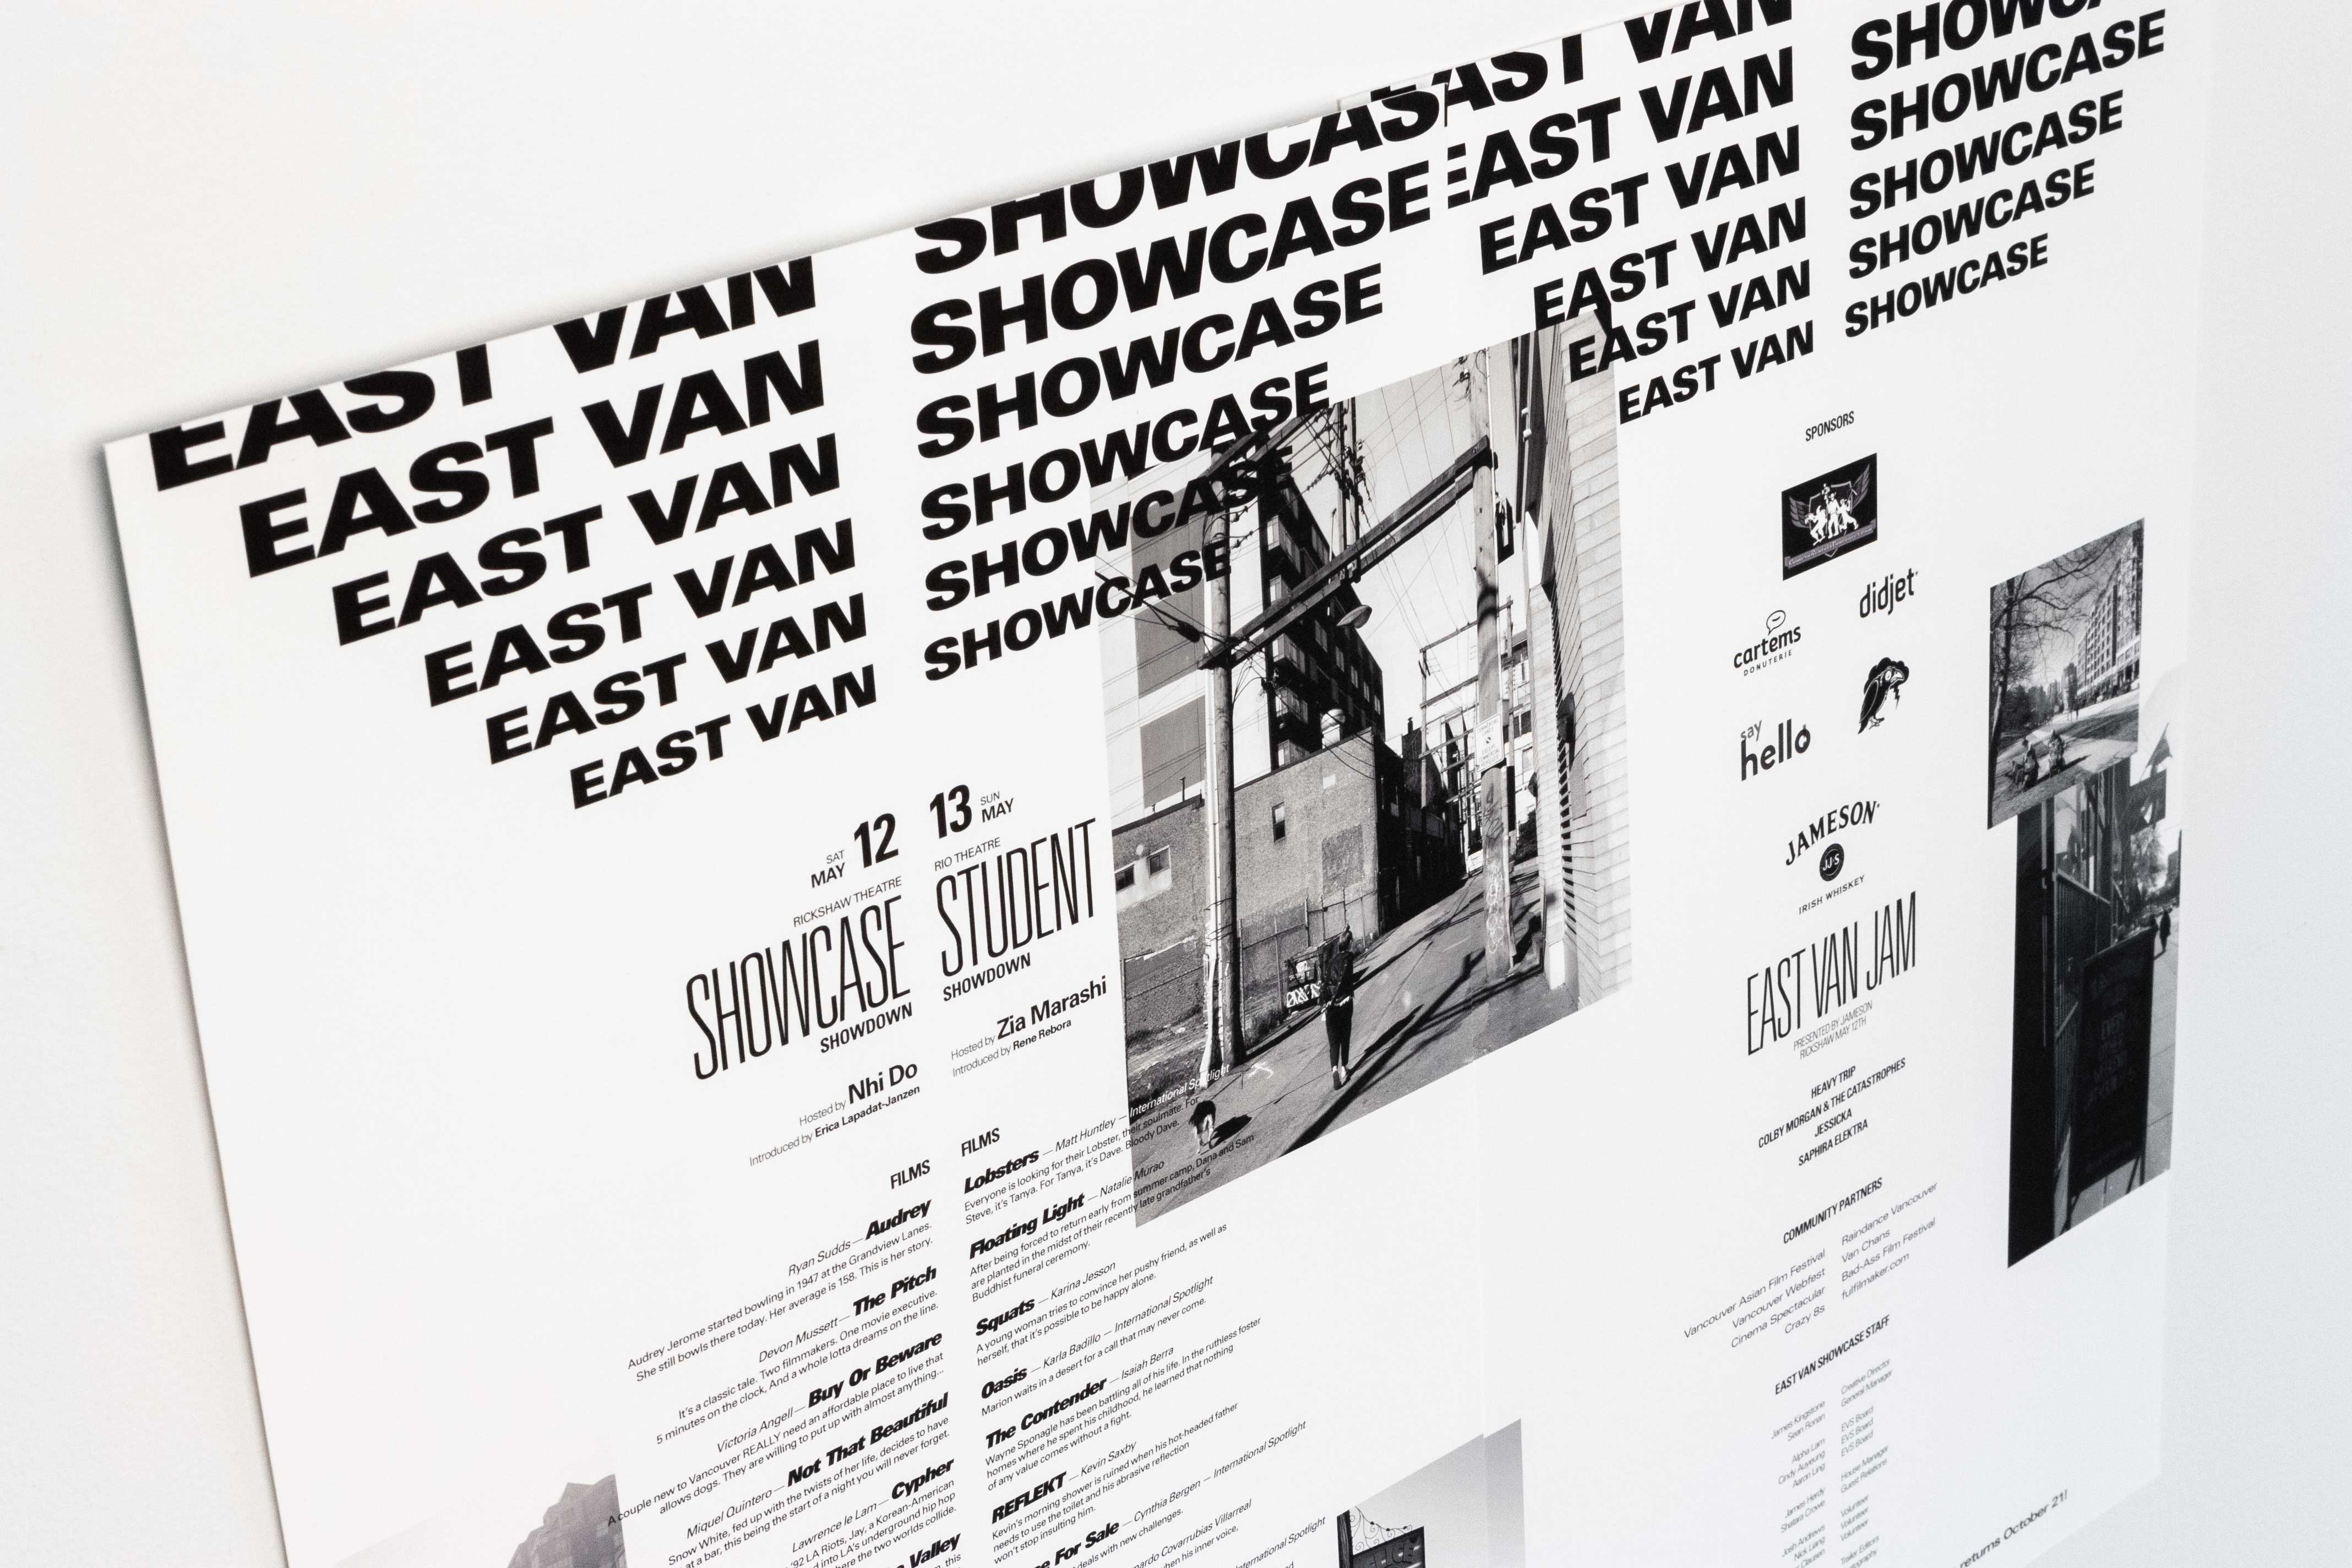 East Van Showcase event poster — by Yagnyuk.